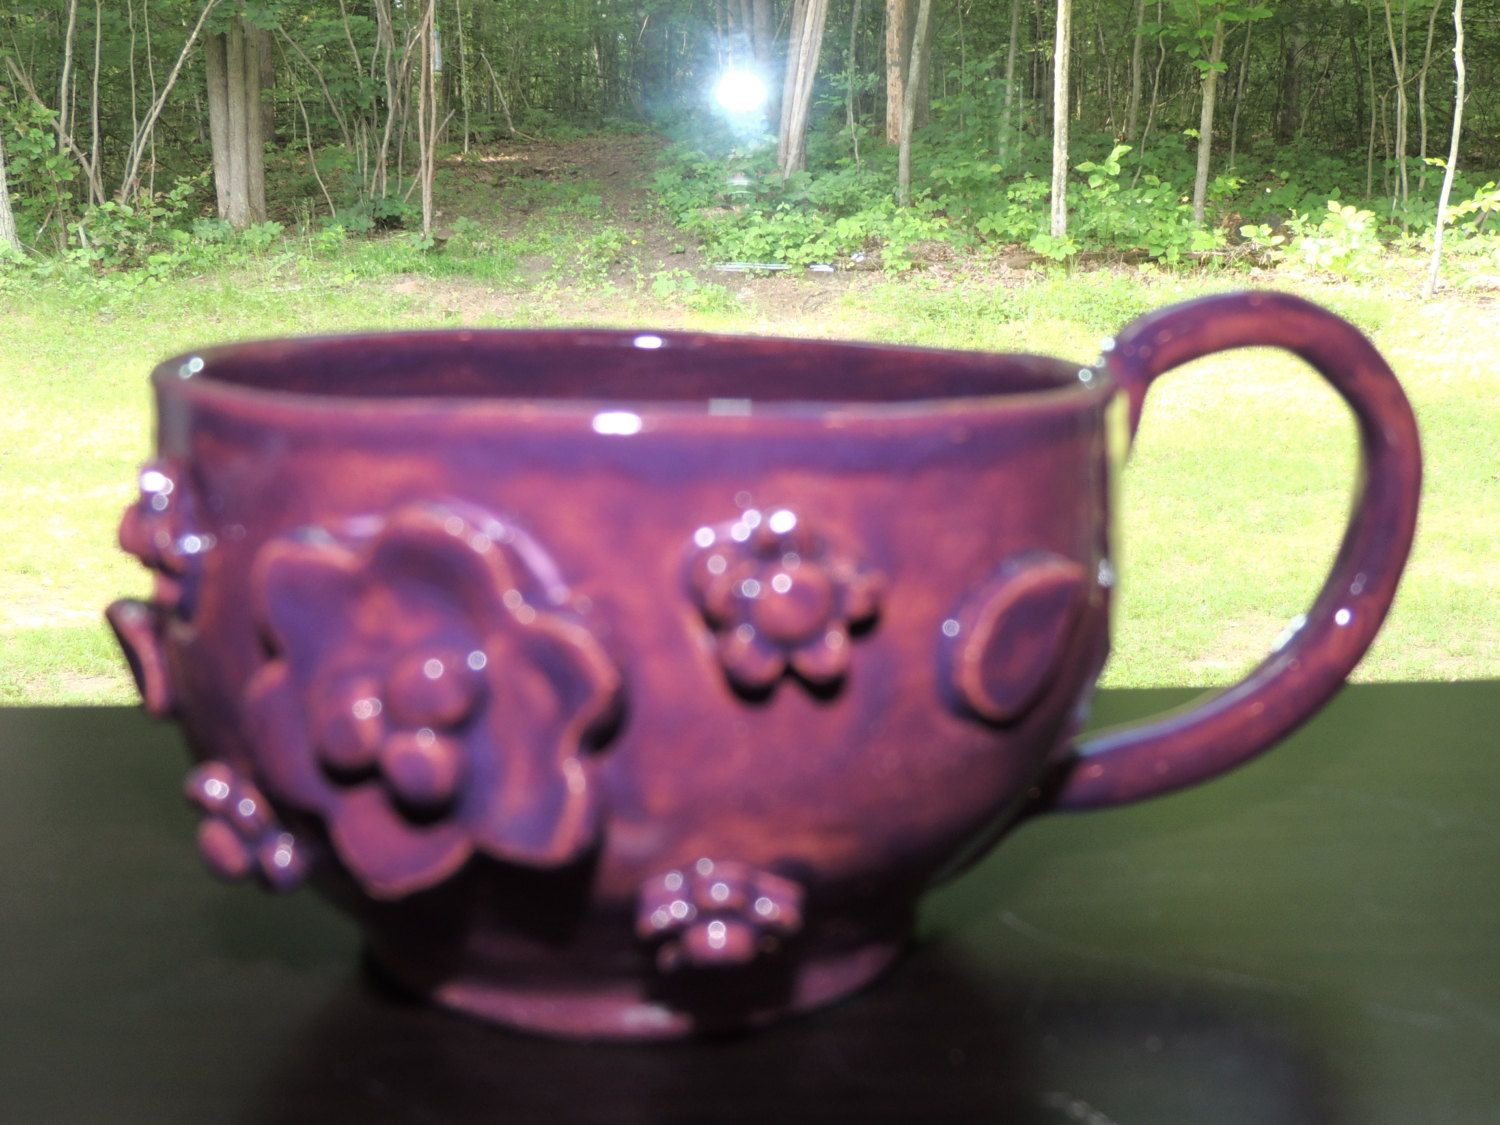 One of a kind hand thrown coffee cup.  Has flowers added for a raised dimension, purple glaze finish. Hand wash, food safe. by GabiLuBoutique on Etsy